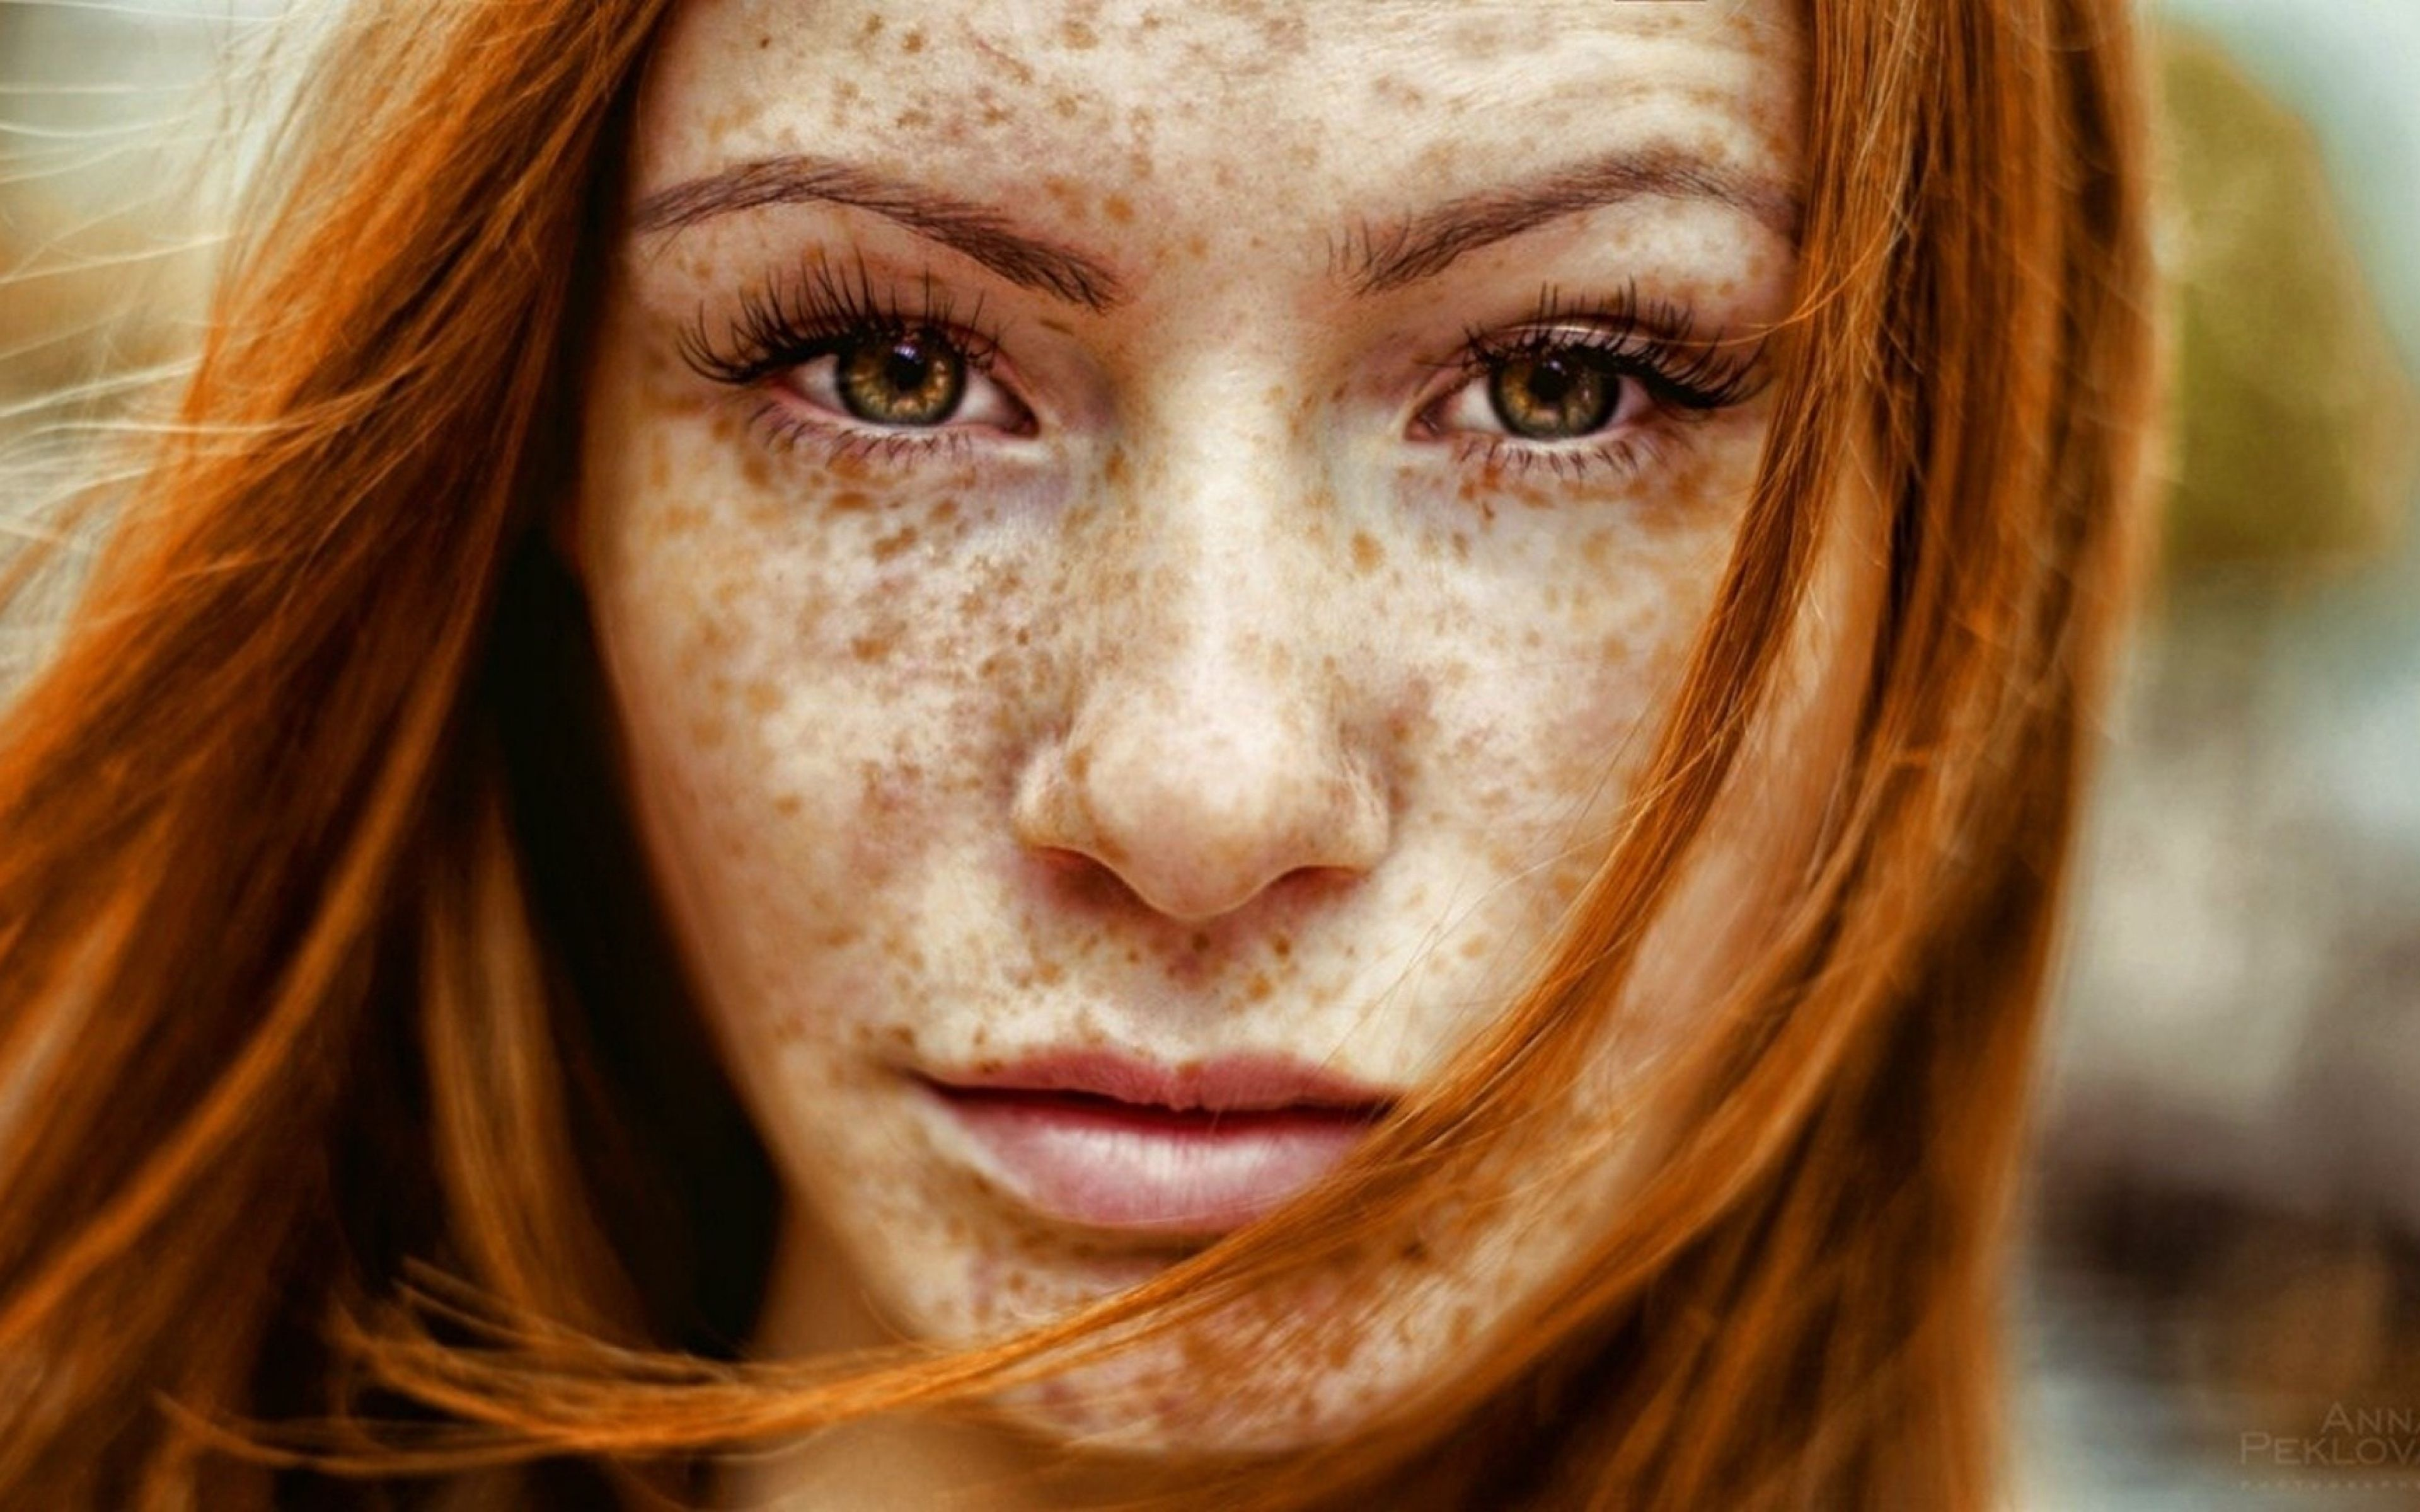 3840x2400 Wallpaper red, hair, freckles, emotions